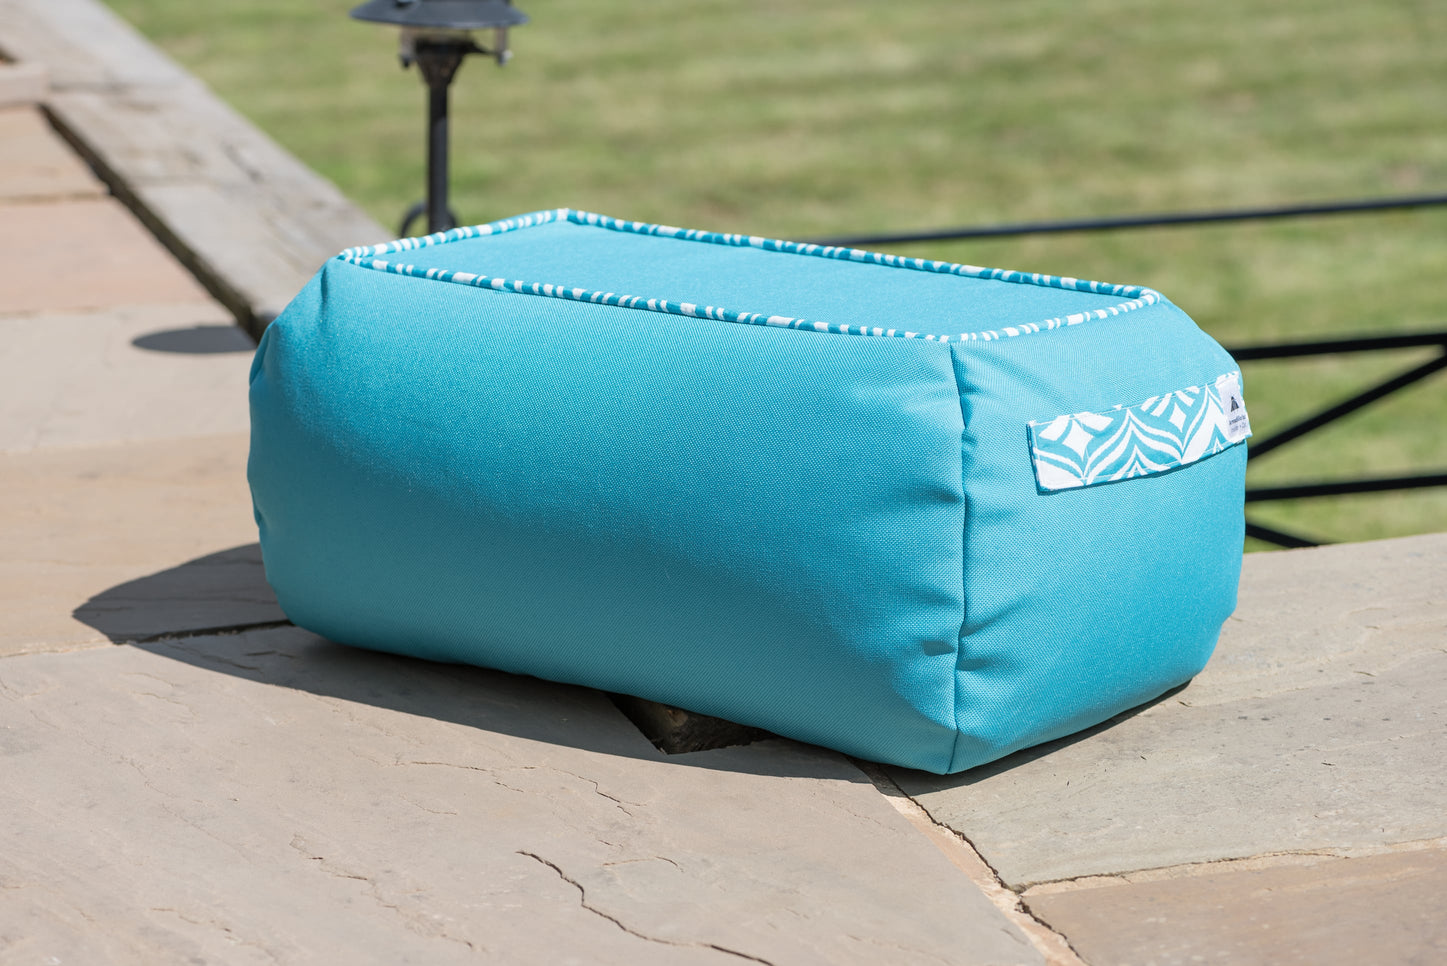 Bean Bag Table in Turquoise Blue